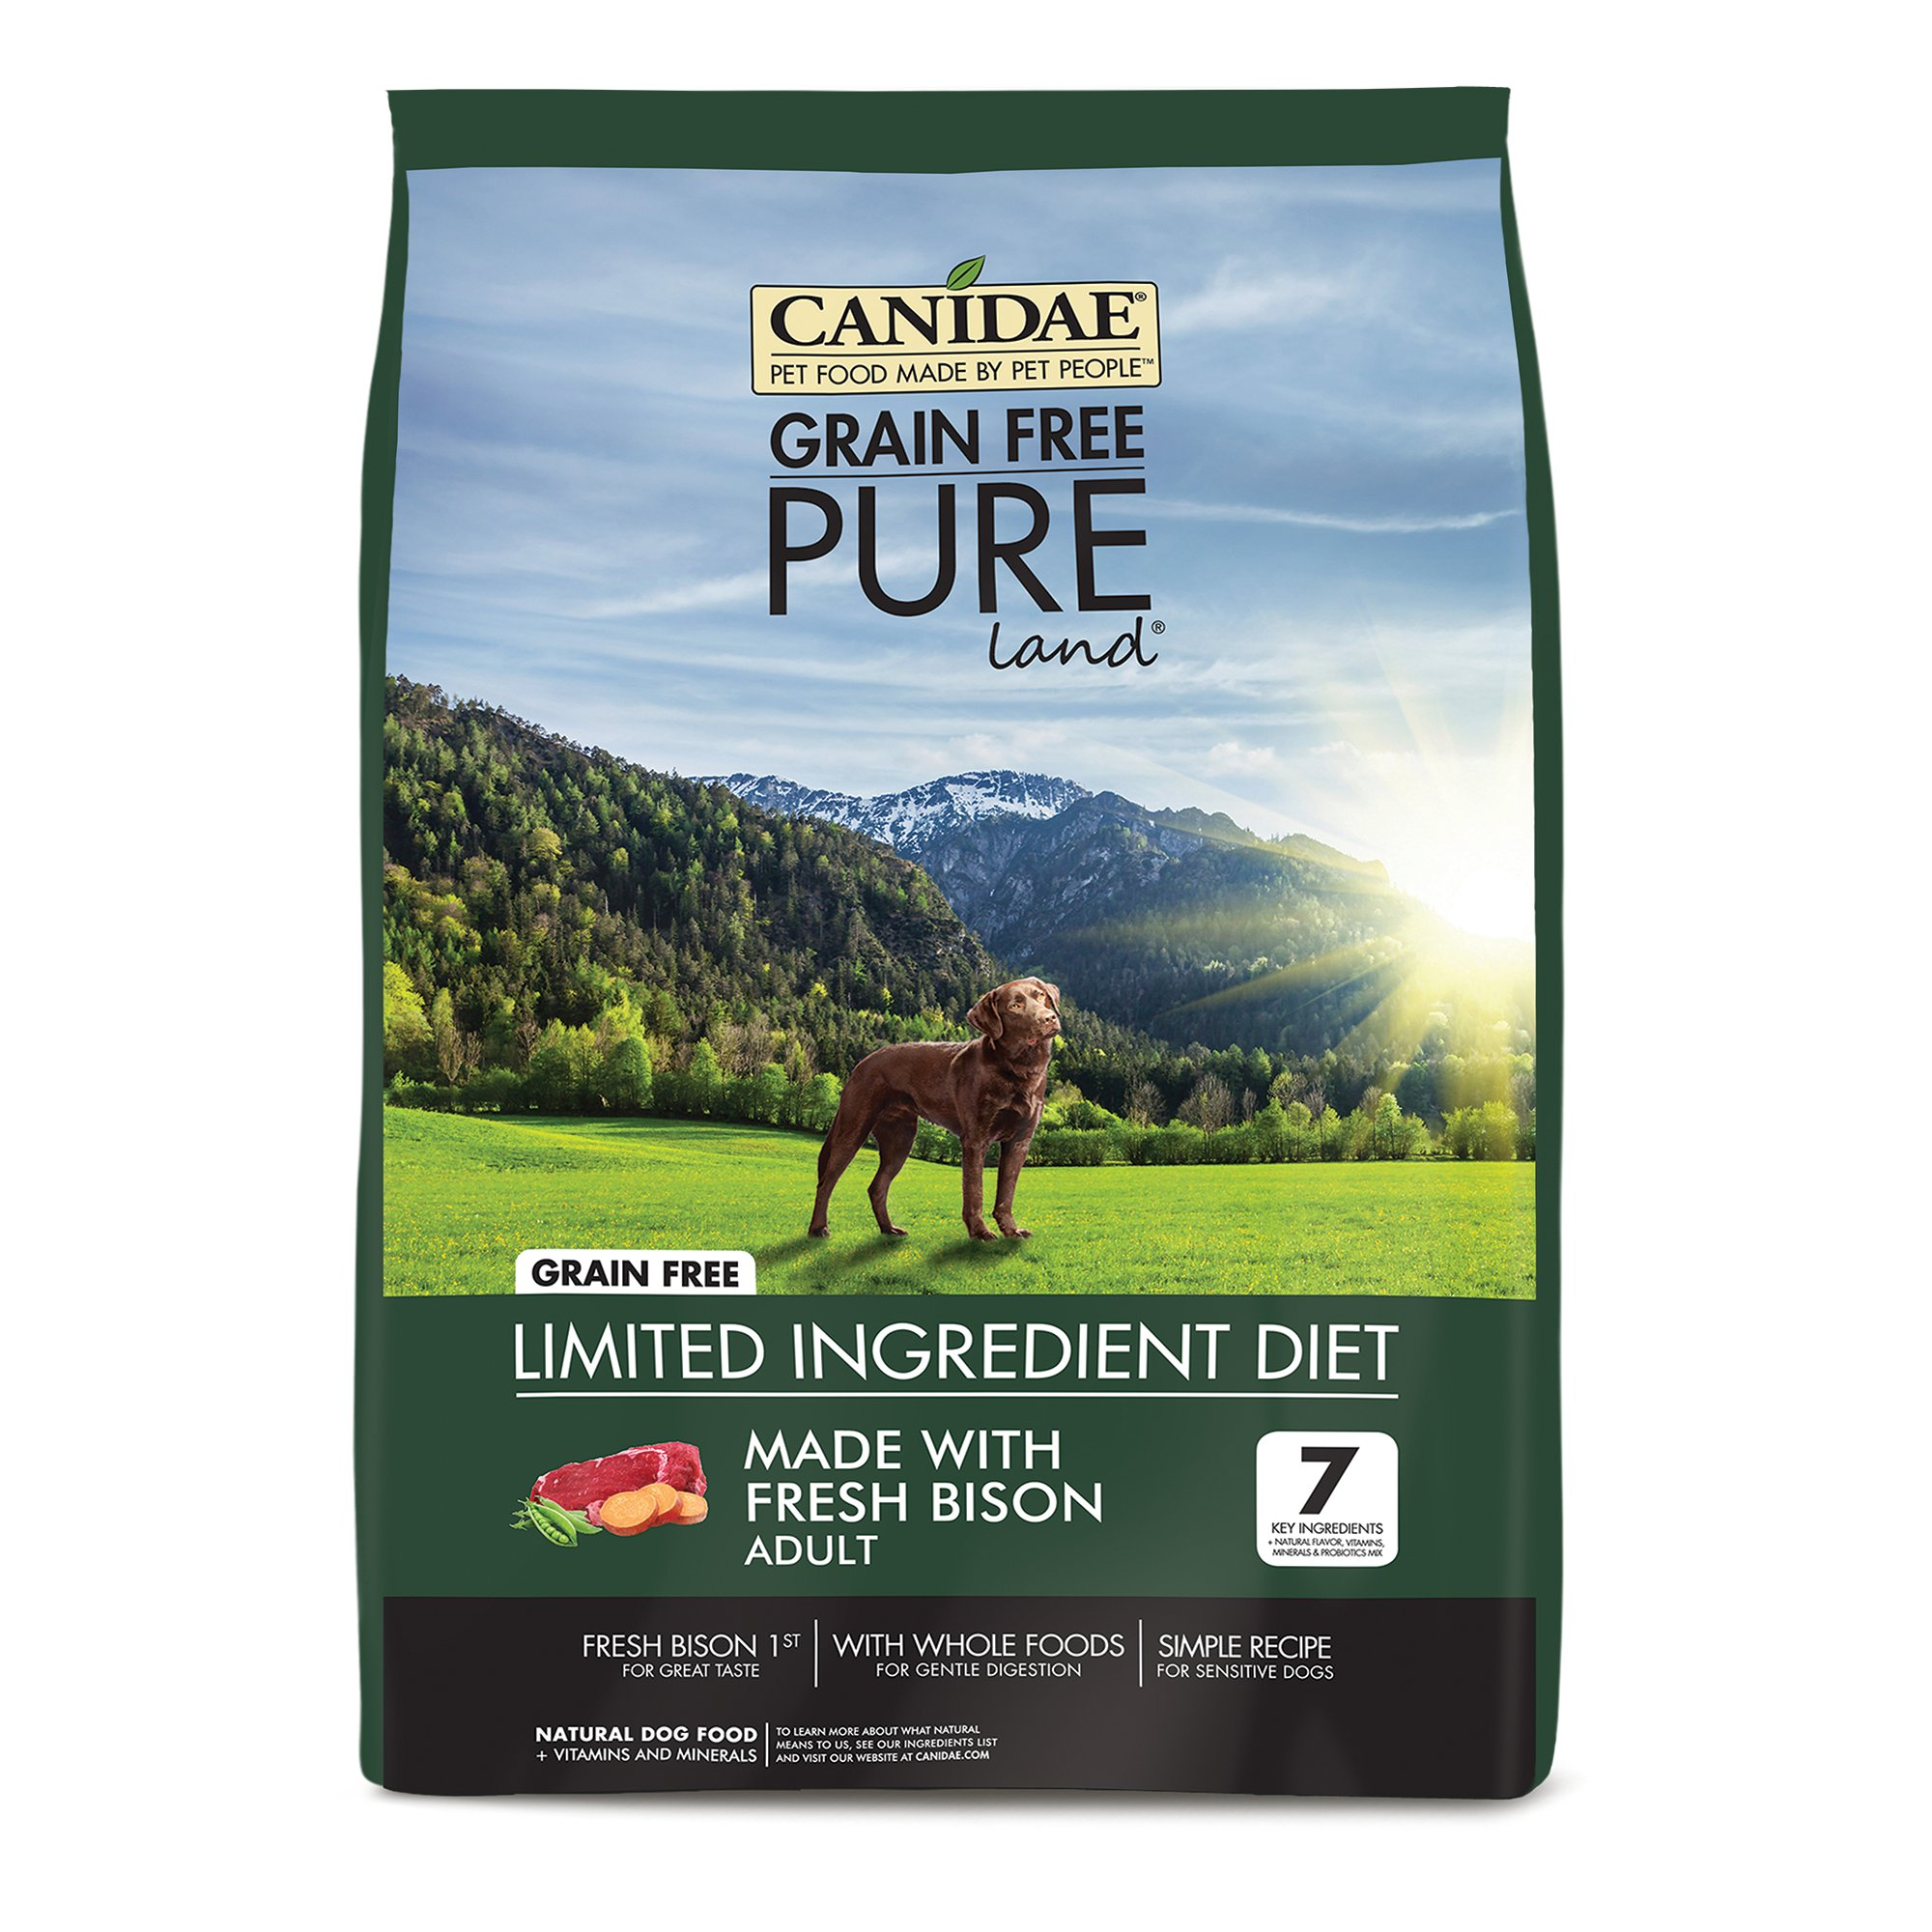 Canidae Grain Free Pure Land Adult Dog Food